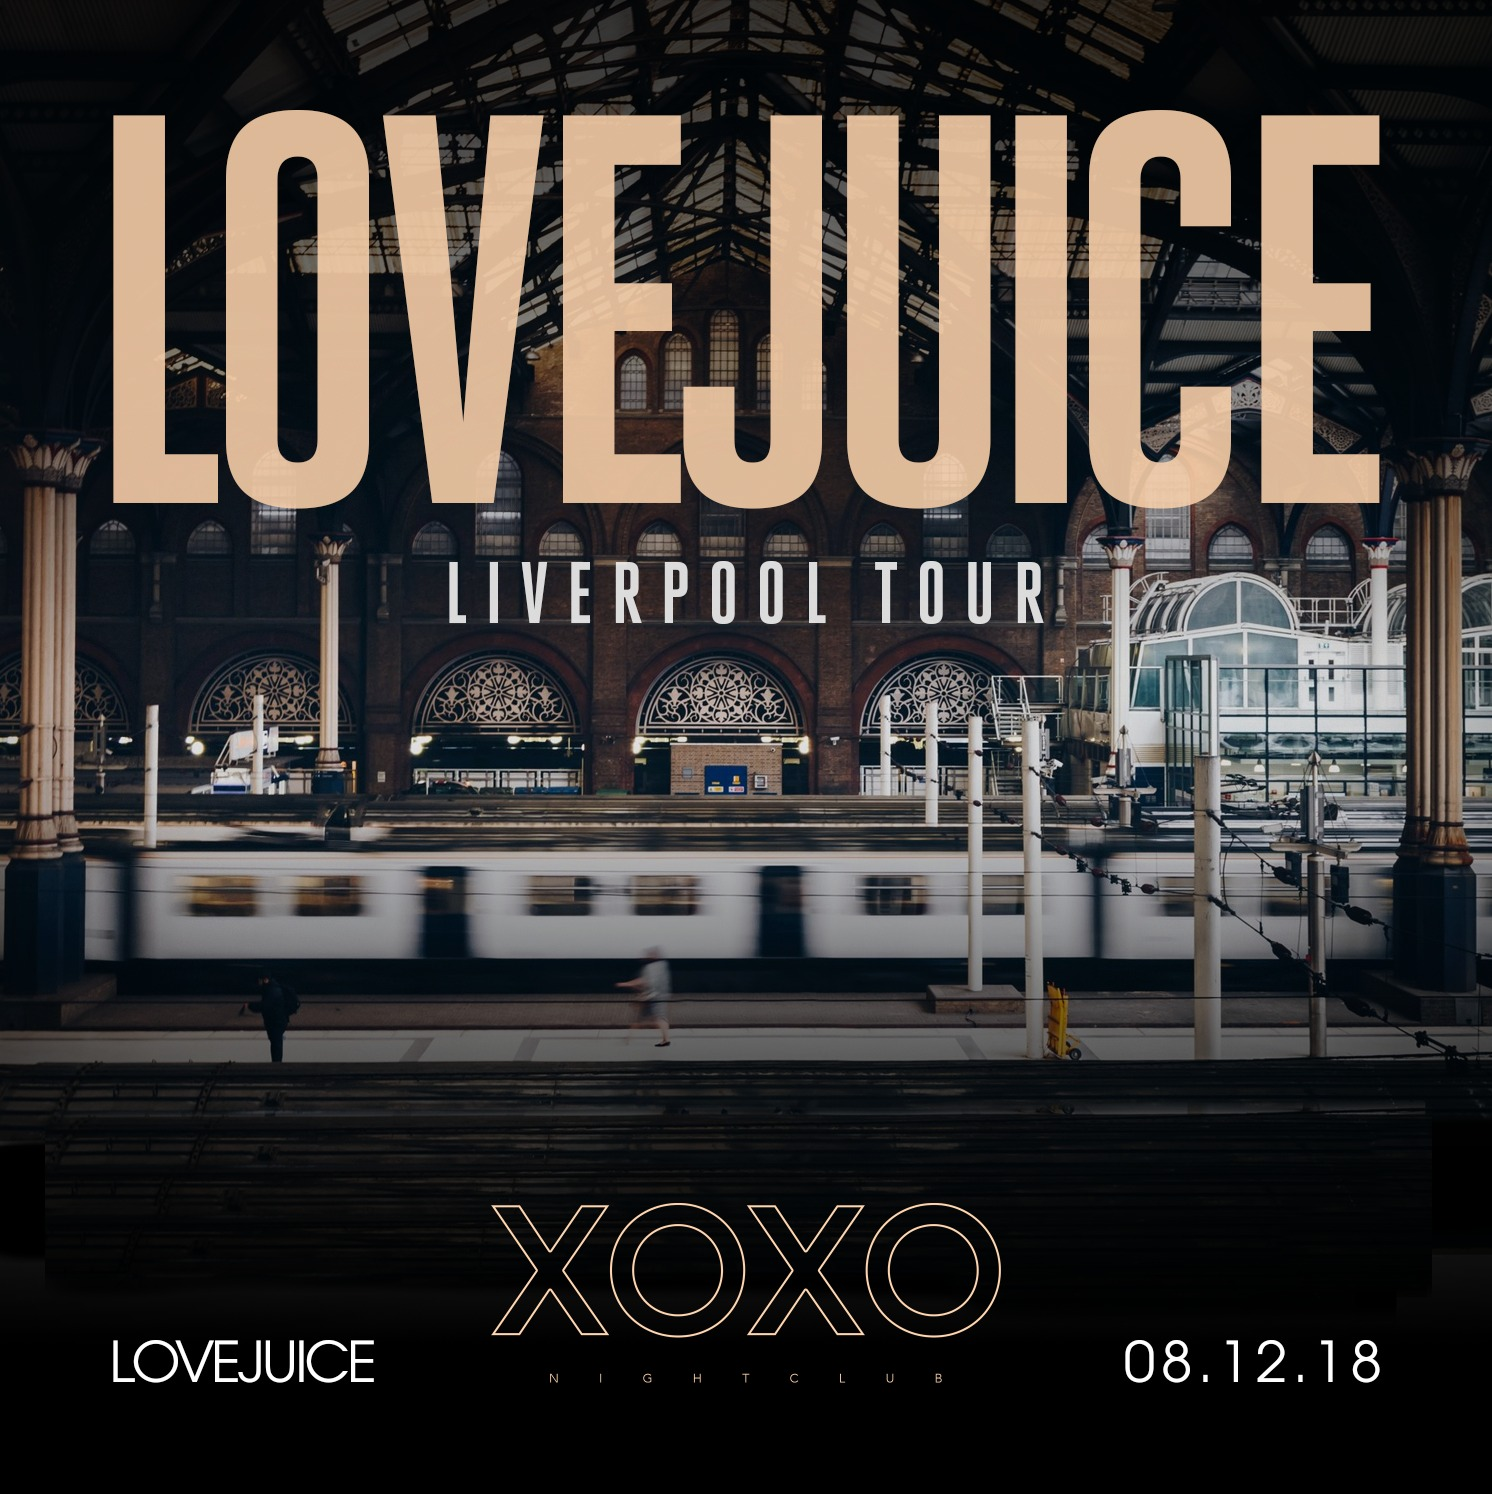 LoveJuice Liverpool